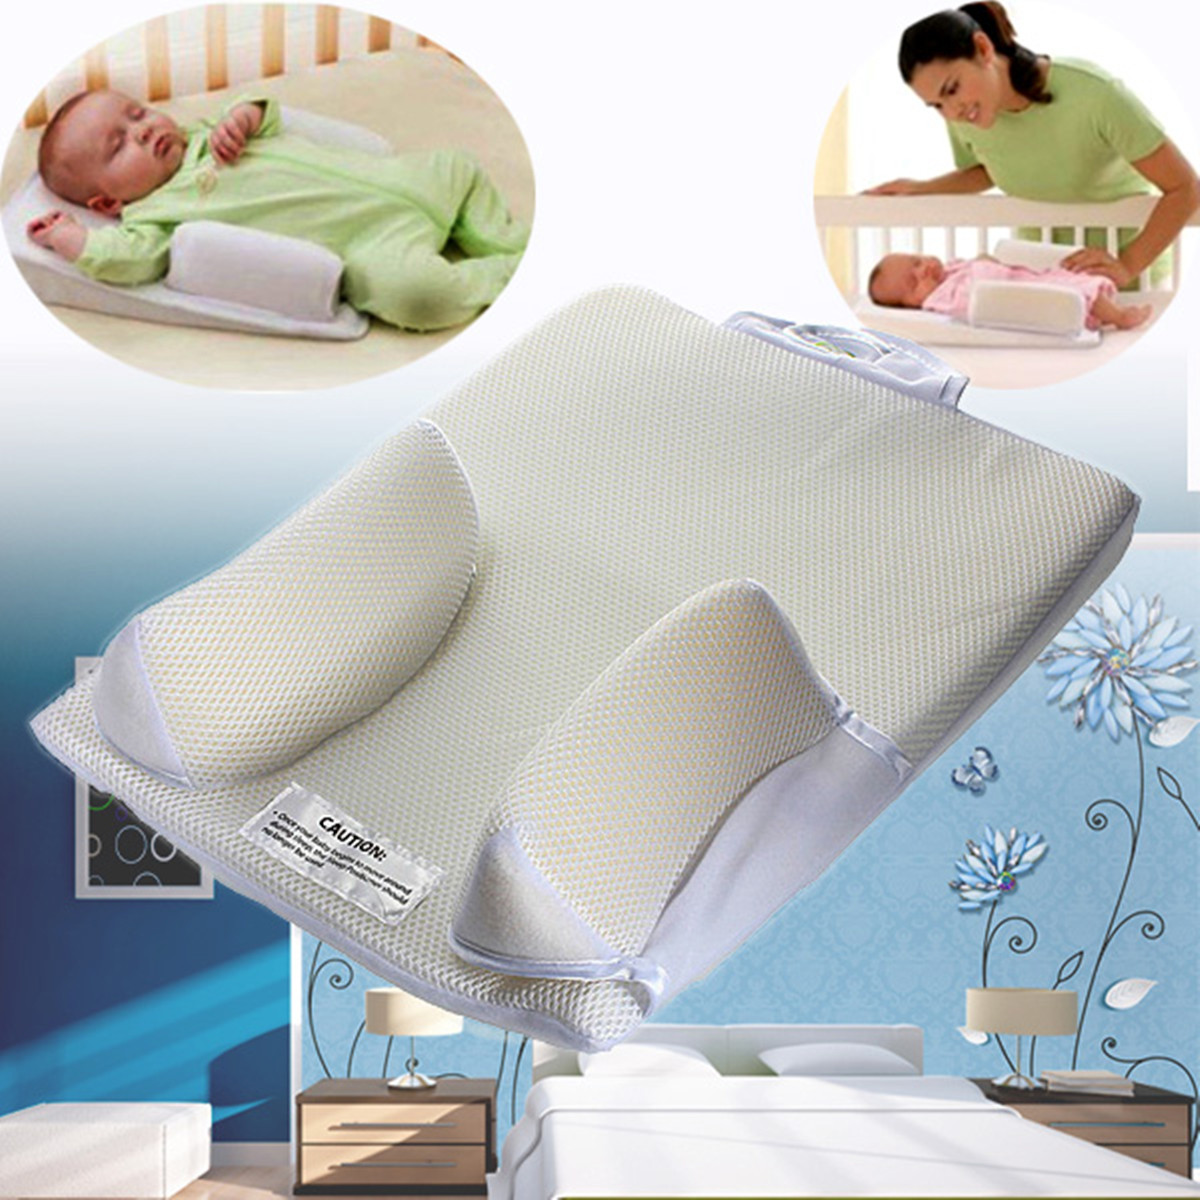 Baby Sleep Fixed Position Amp Anti Roll Pillow Gemhome